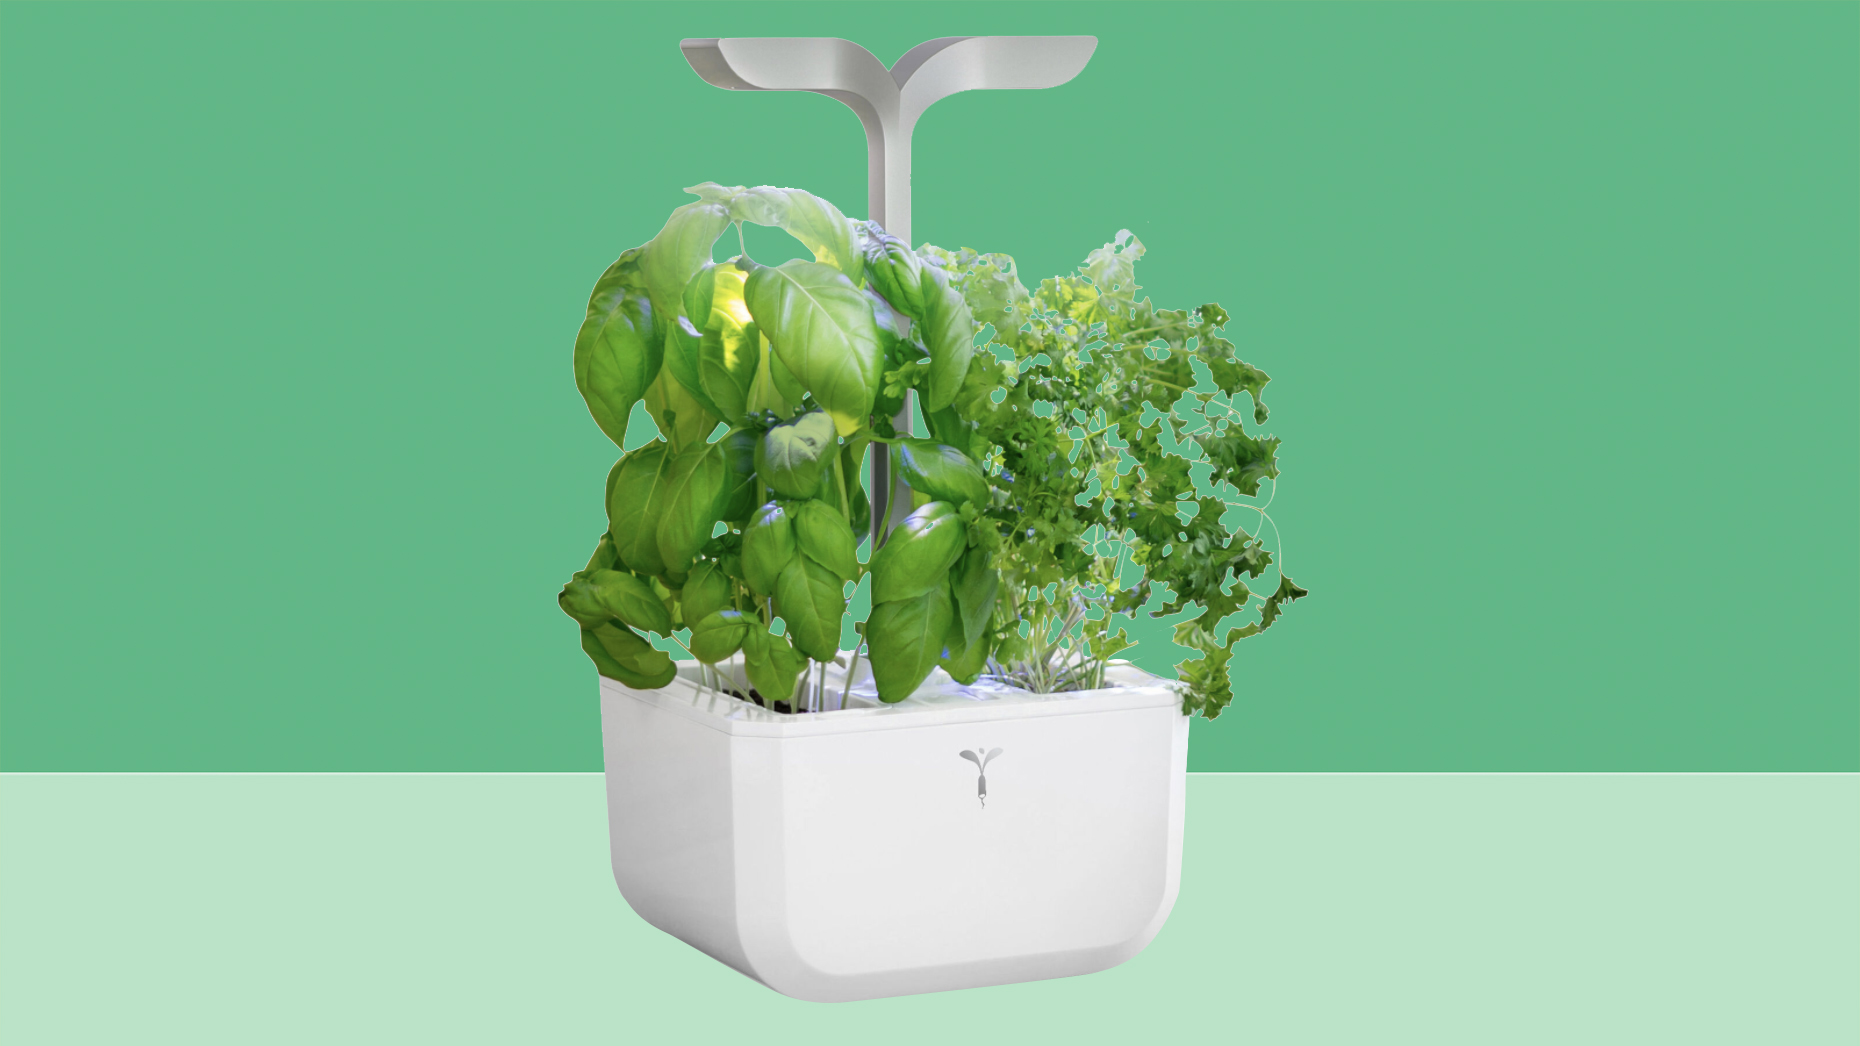 Best Christmas gifts 2020 - veritable smart planter large on green background tout